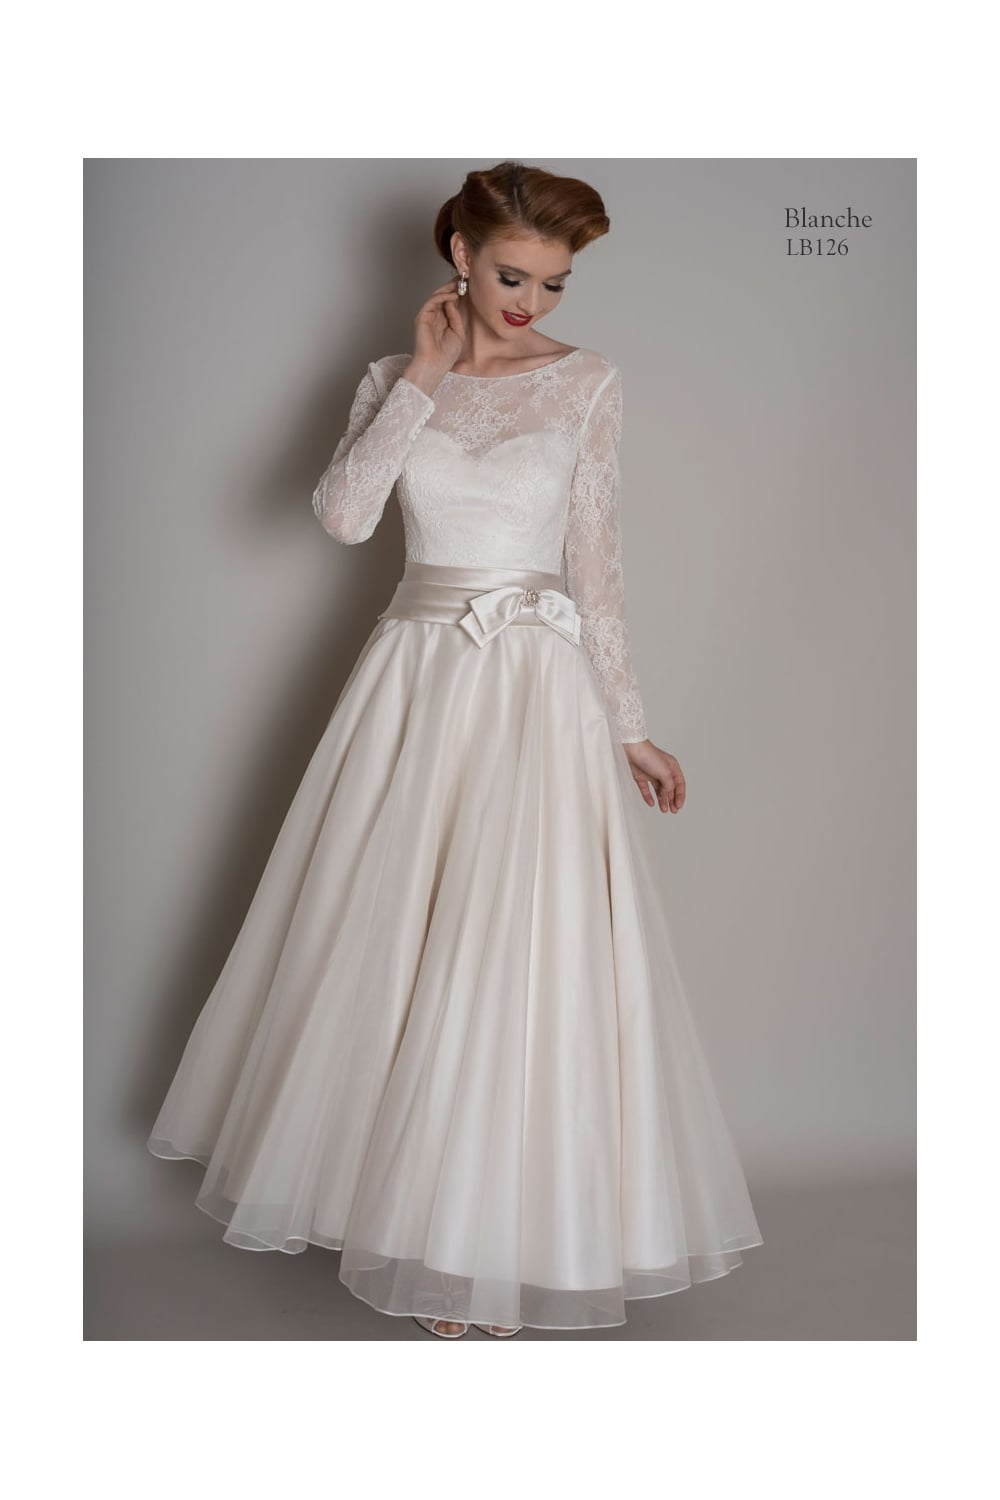 Loulou BLANCHE Calf Length Short Vintage Wedding Dress With Sleeves ...